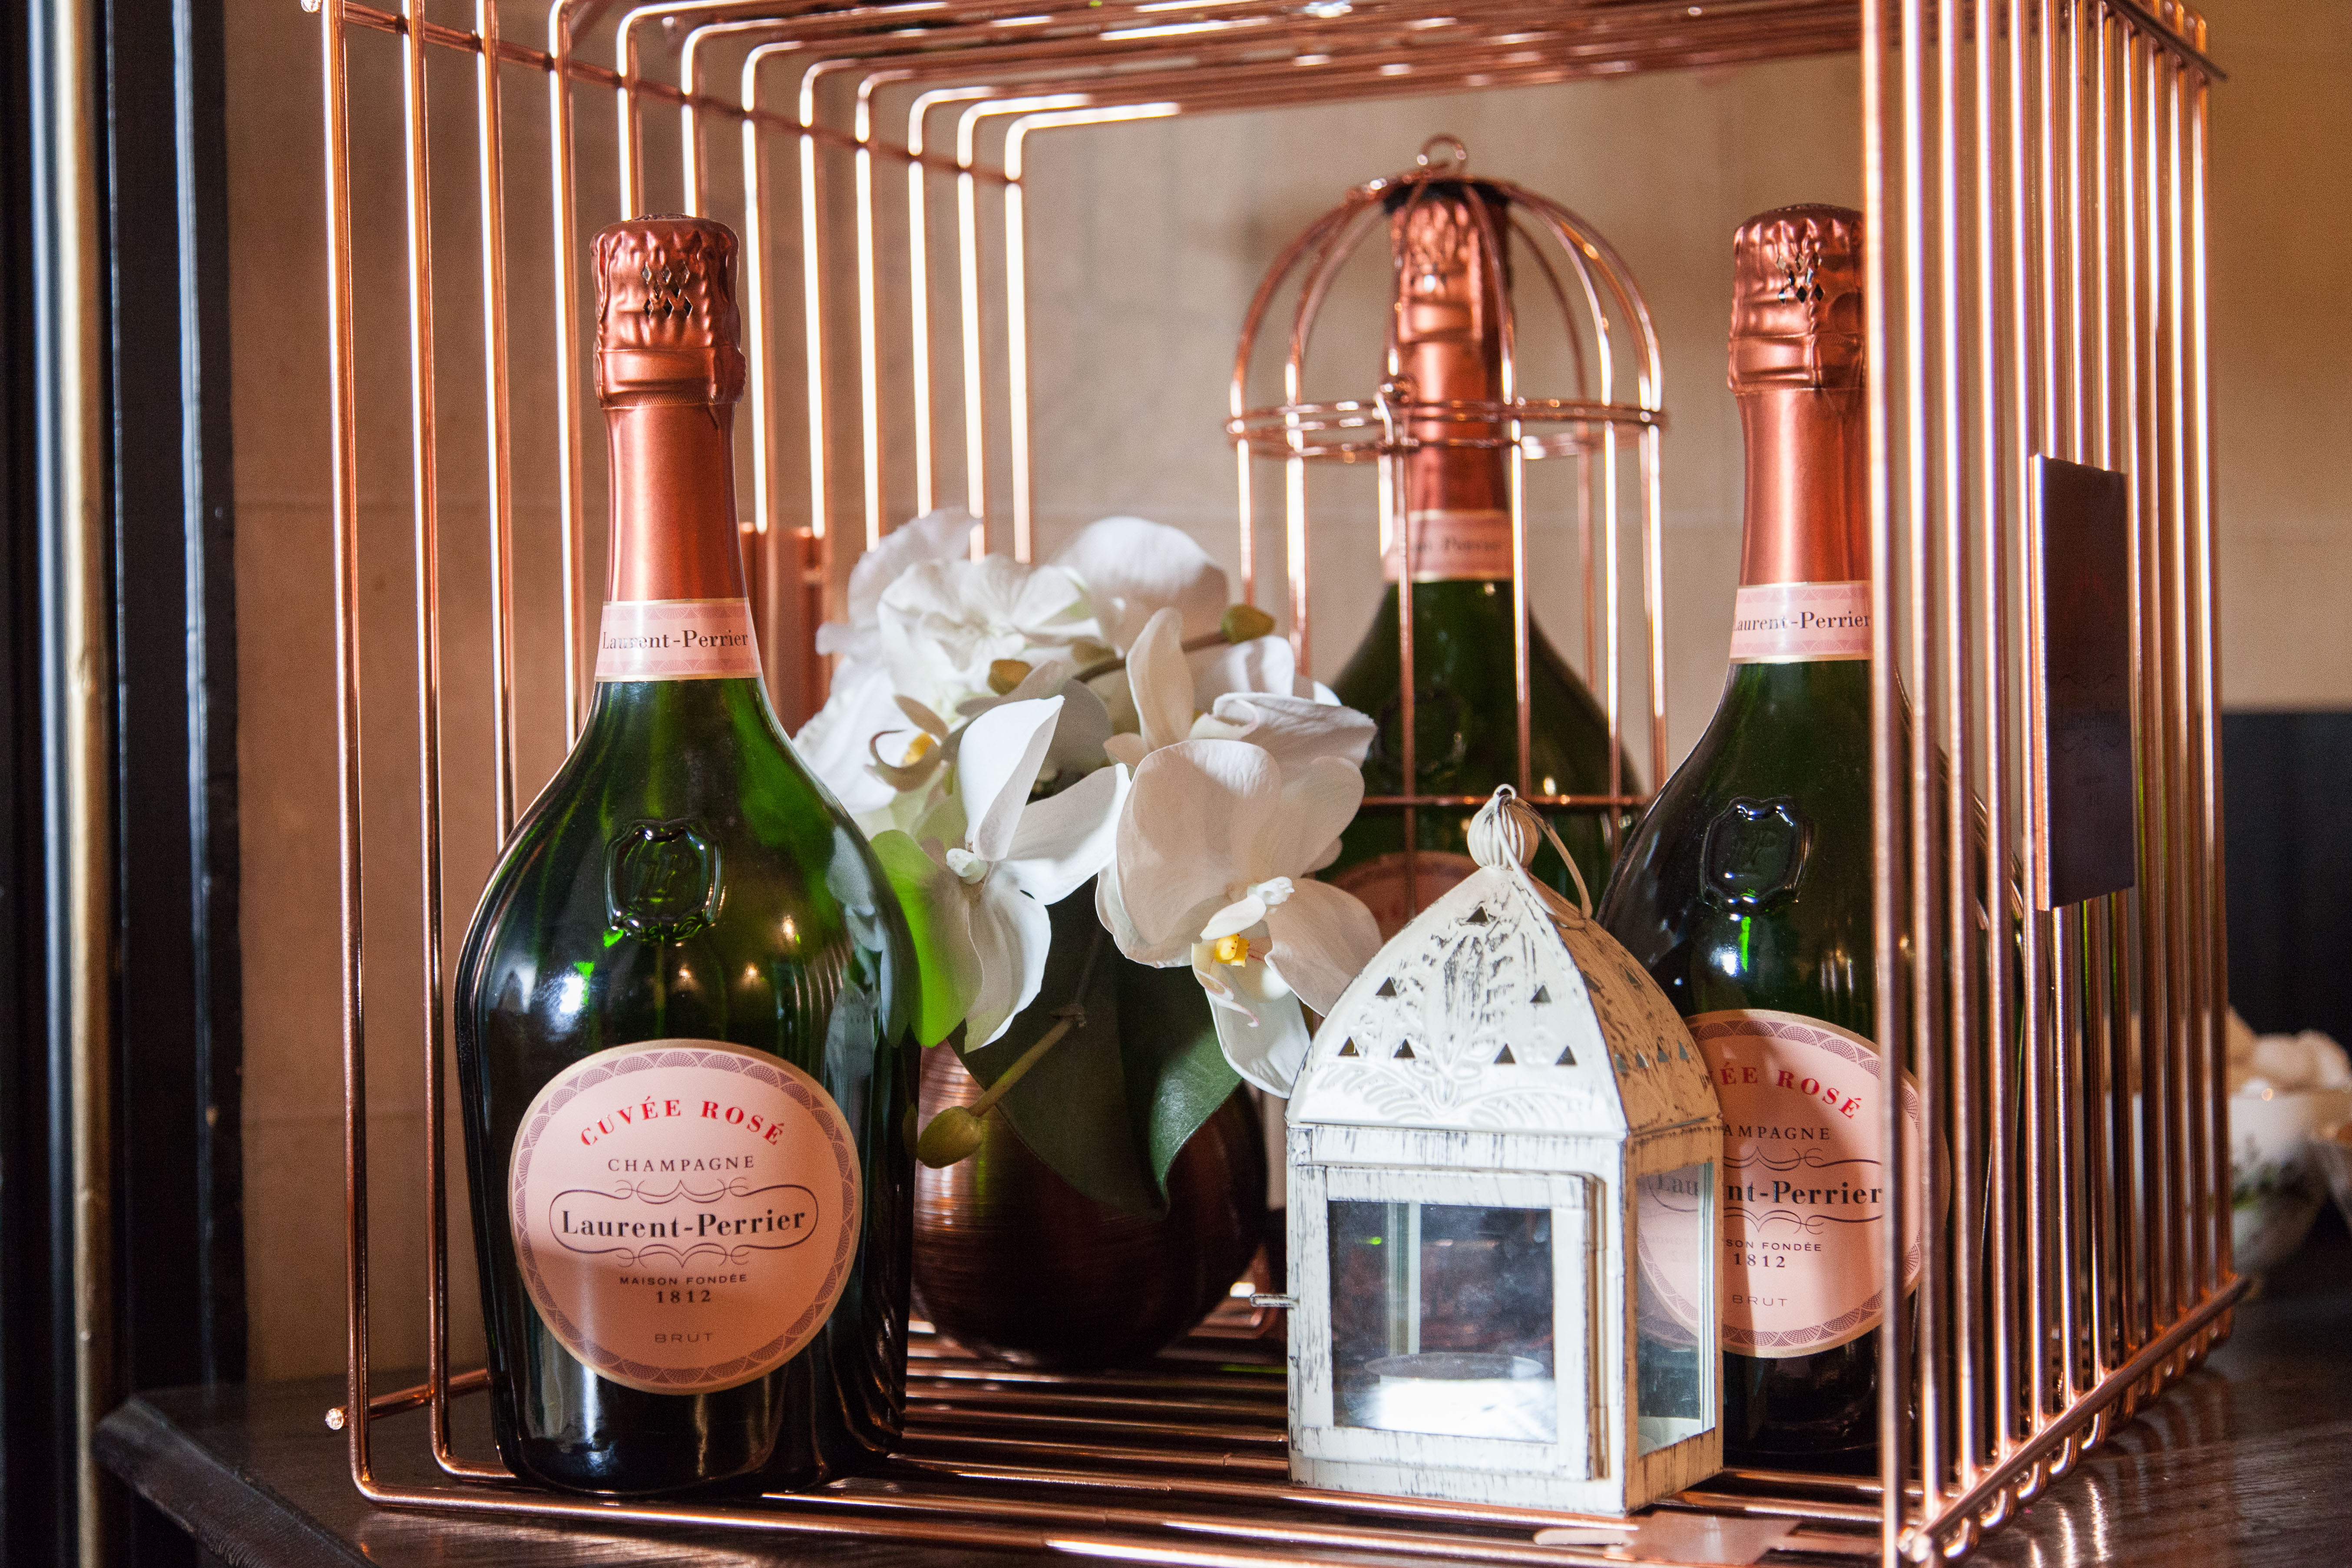 Laurent-Perrier Afternoon Tea -The Exclusive Experience by Searcys